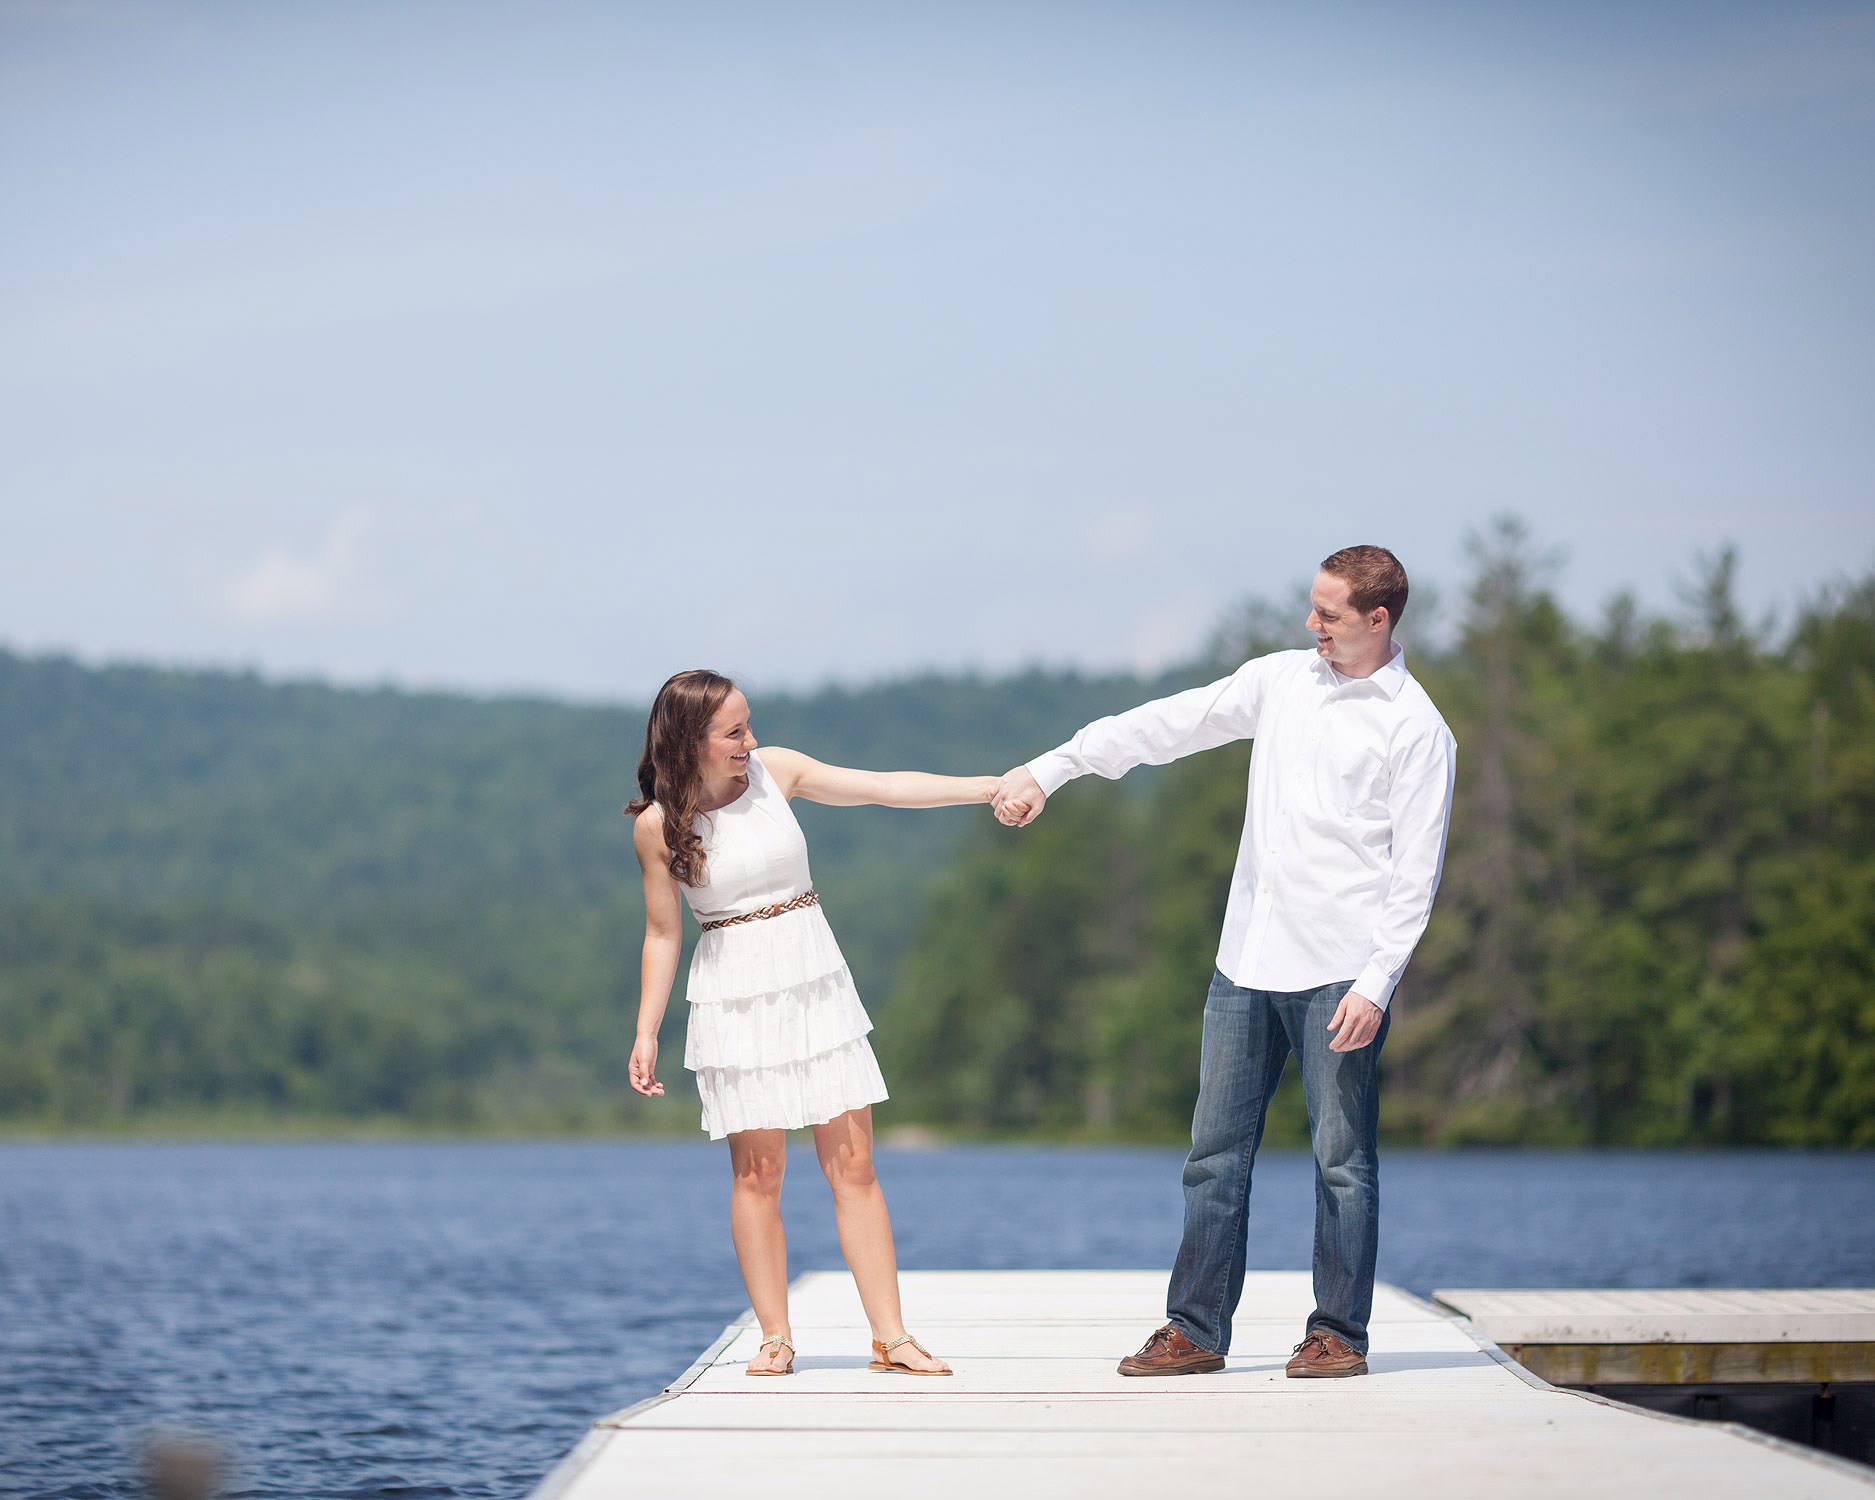 A couple outstretch their arms to hold hands while standing on a dock during a summer camp engagement session